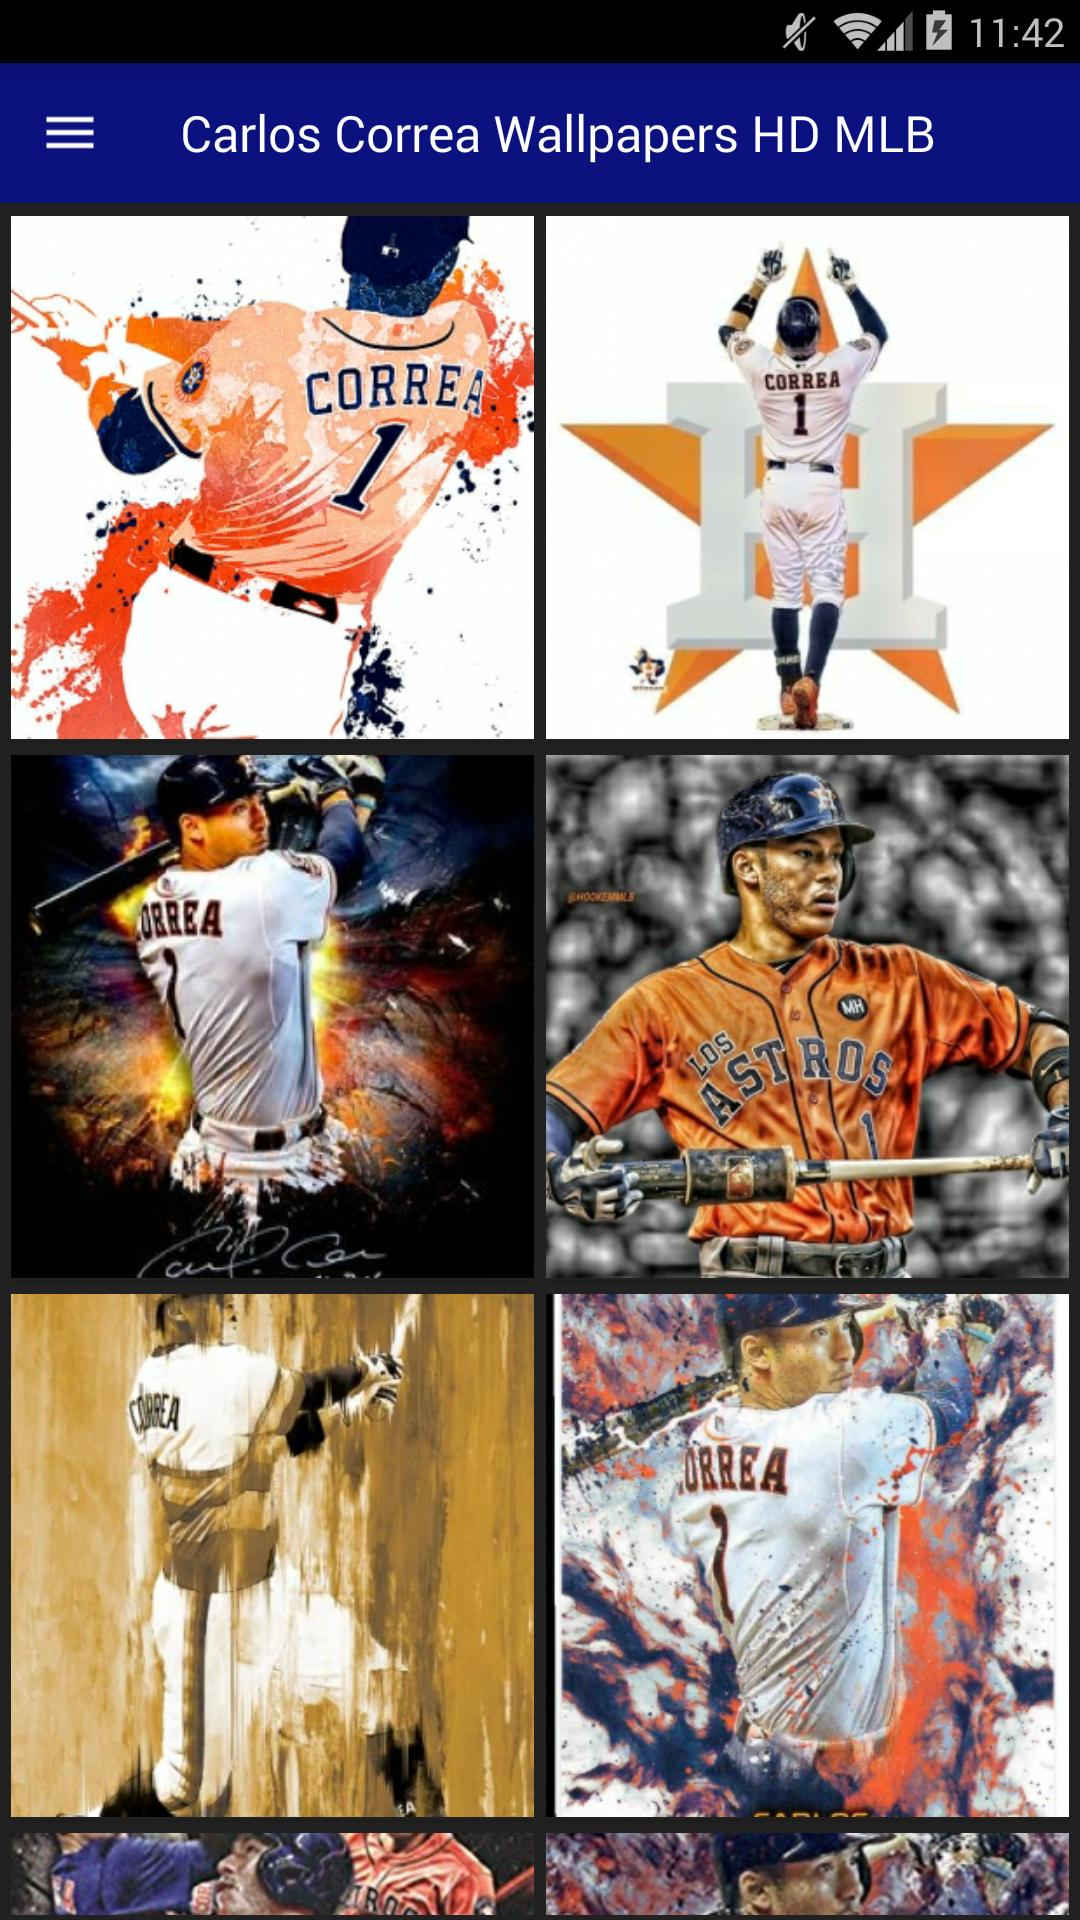 Carlos Correa Wallpapers Hd Mlb For Android Apk Download